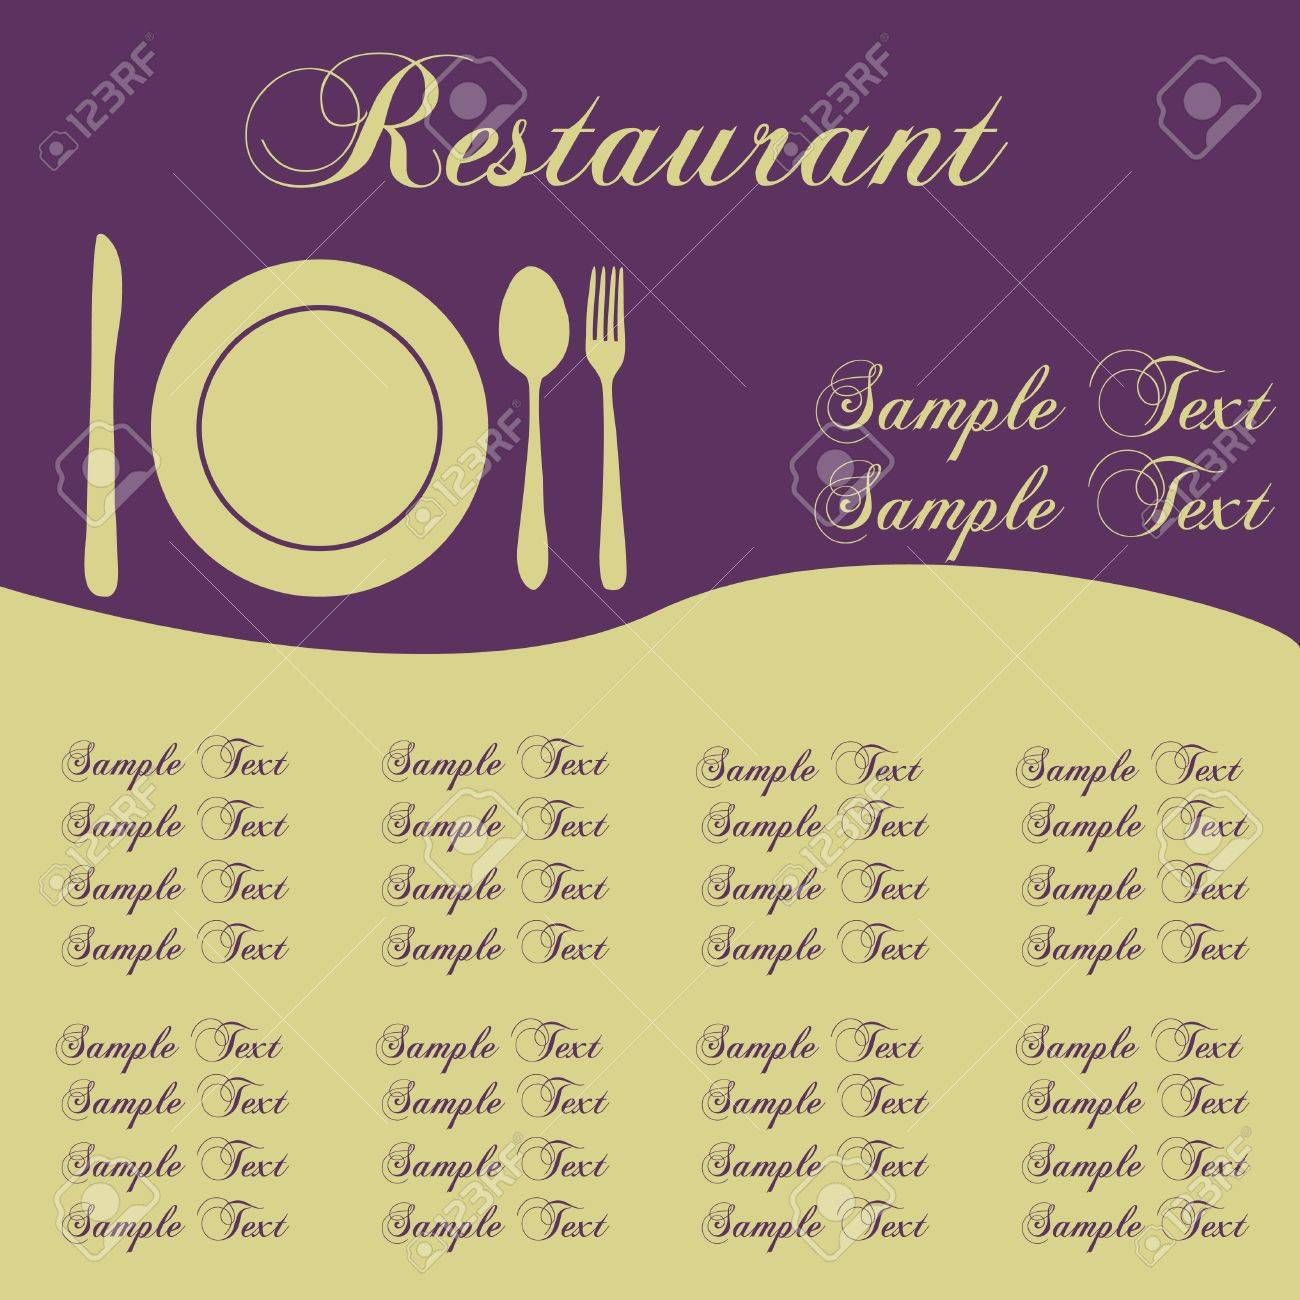 Image of a colorful purple sample restaurant menu with editable text. Stock Photo - 8519867